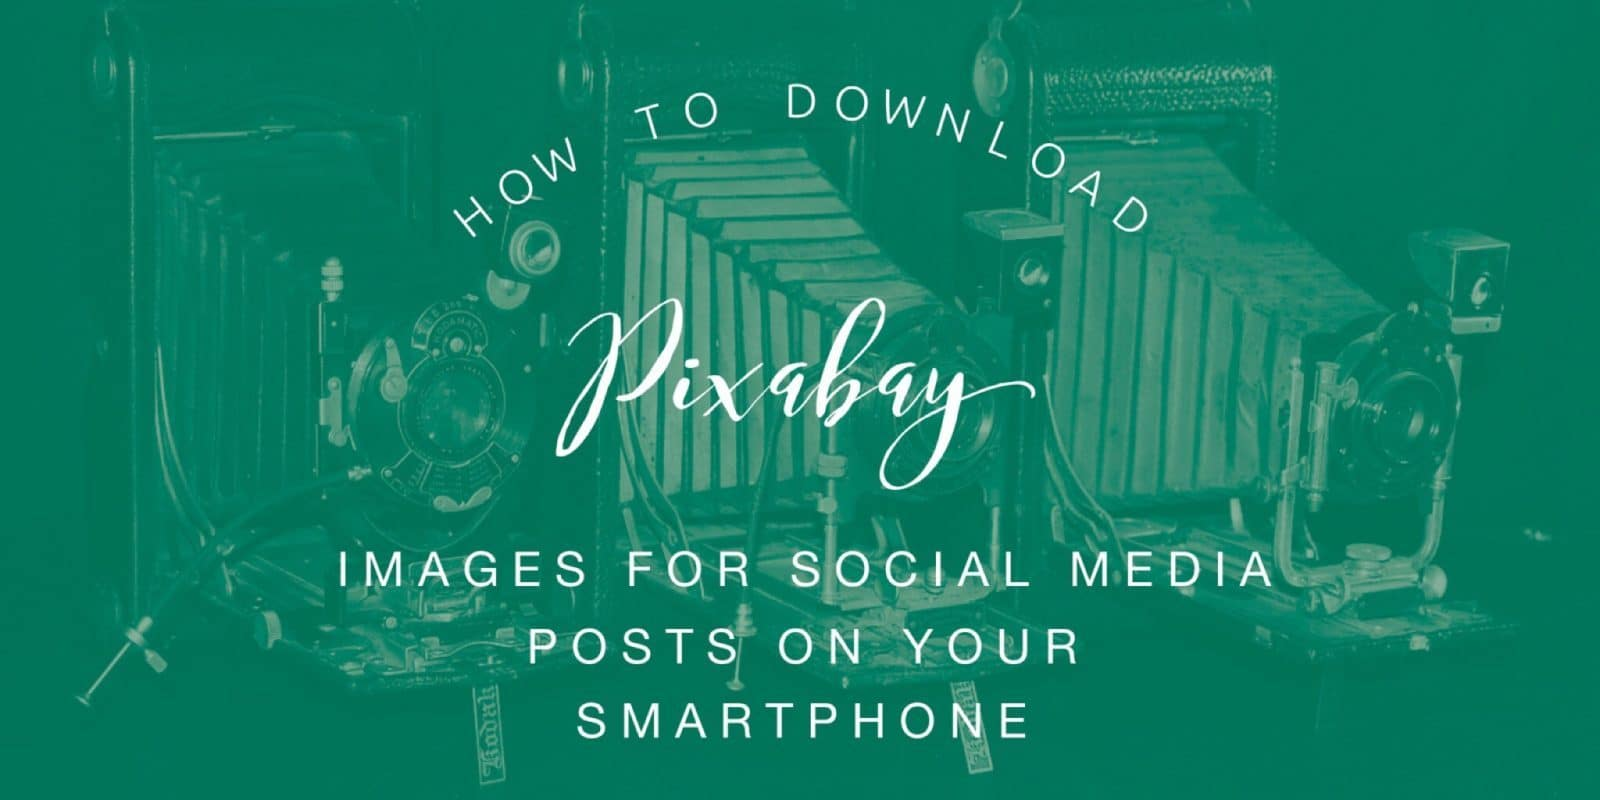 How to find and use images for your mobile content marketing using the Pixabay mobile app